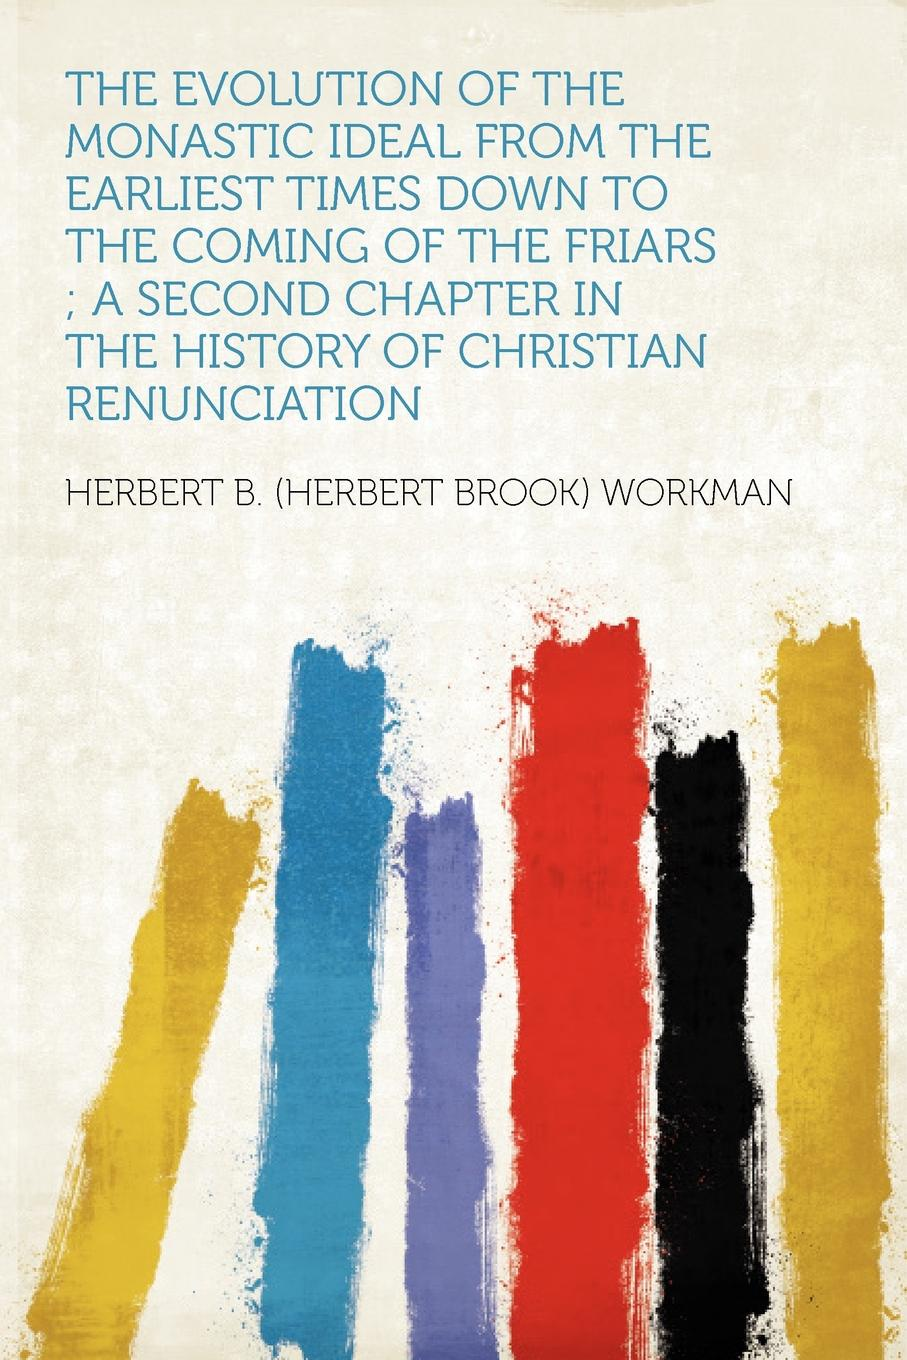 The Evolution of the Monastic Ideal From the Earliest Times Down to the Coming of the Friars ; a Second Chapter in the History of Christian Renunciation. Herbert B. (Herbert Brook) Workman